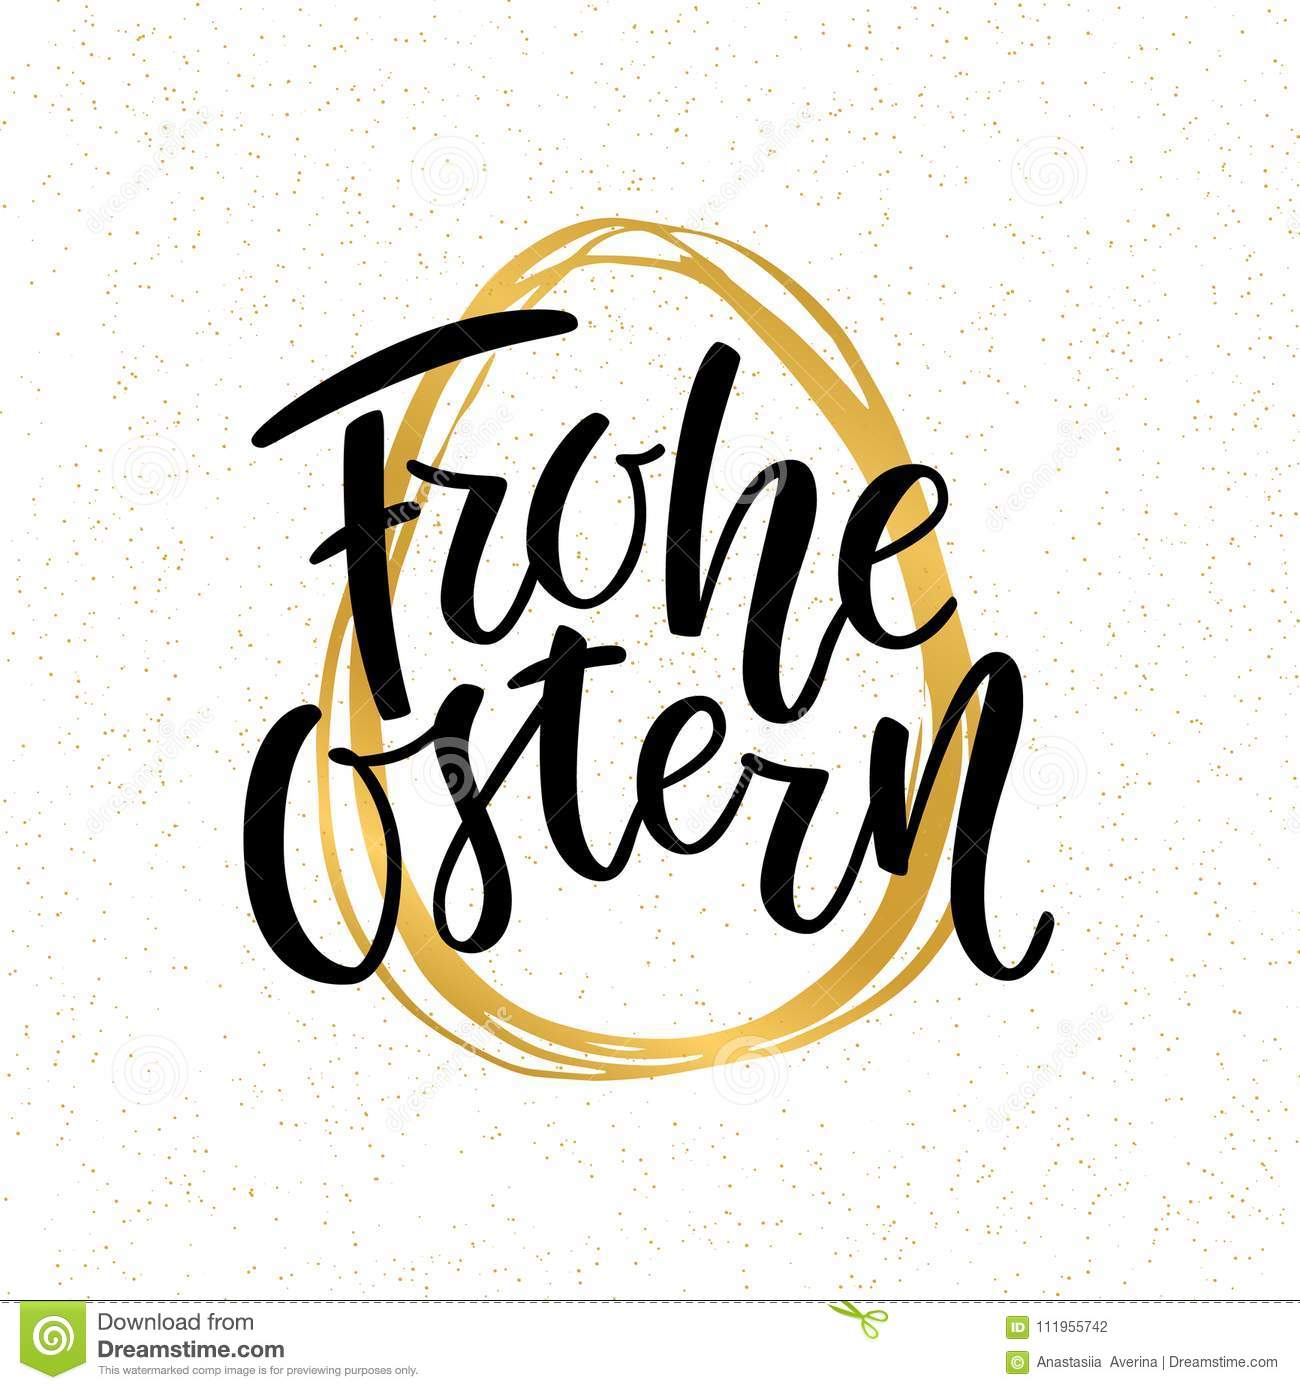 Happy Easter German text lettering calligraphy on golden hand-drawn egg. Frohe Ostern for Paschal greeting card. Vector